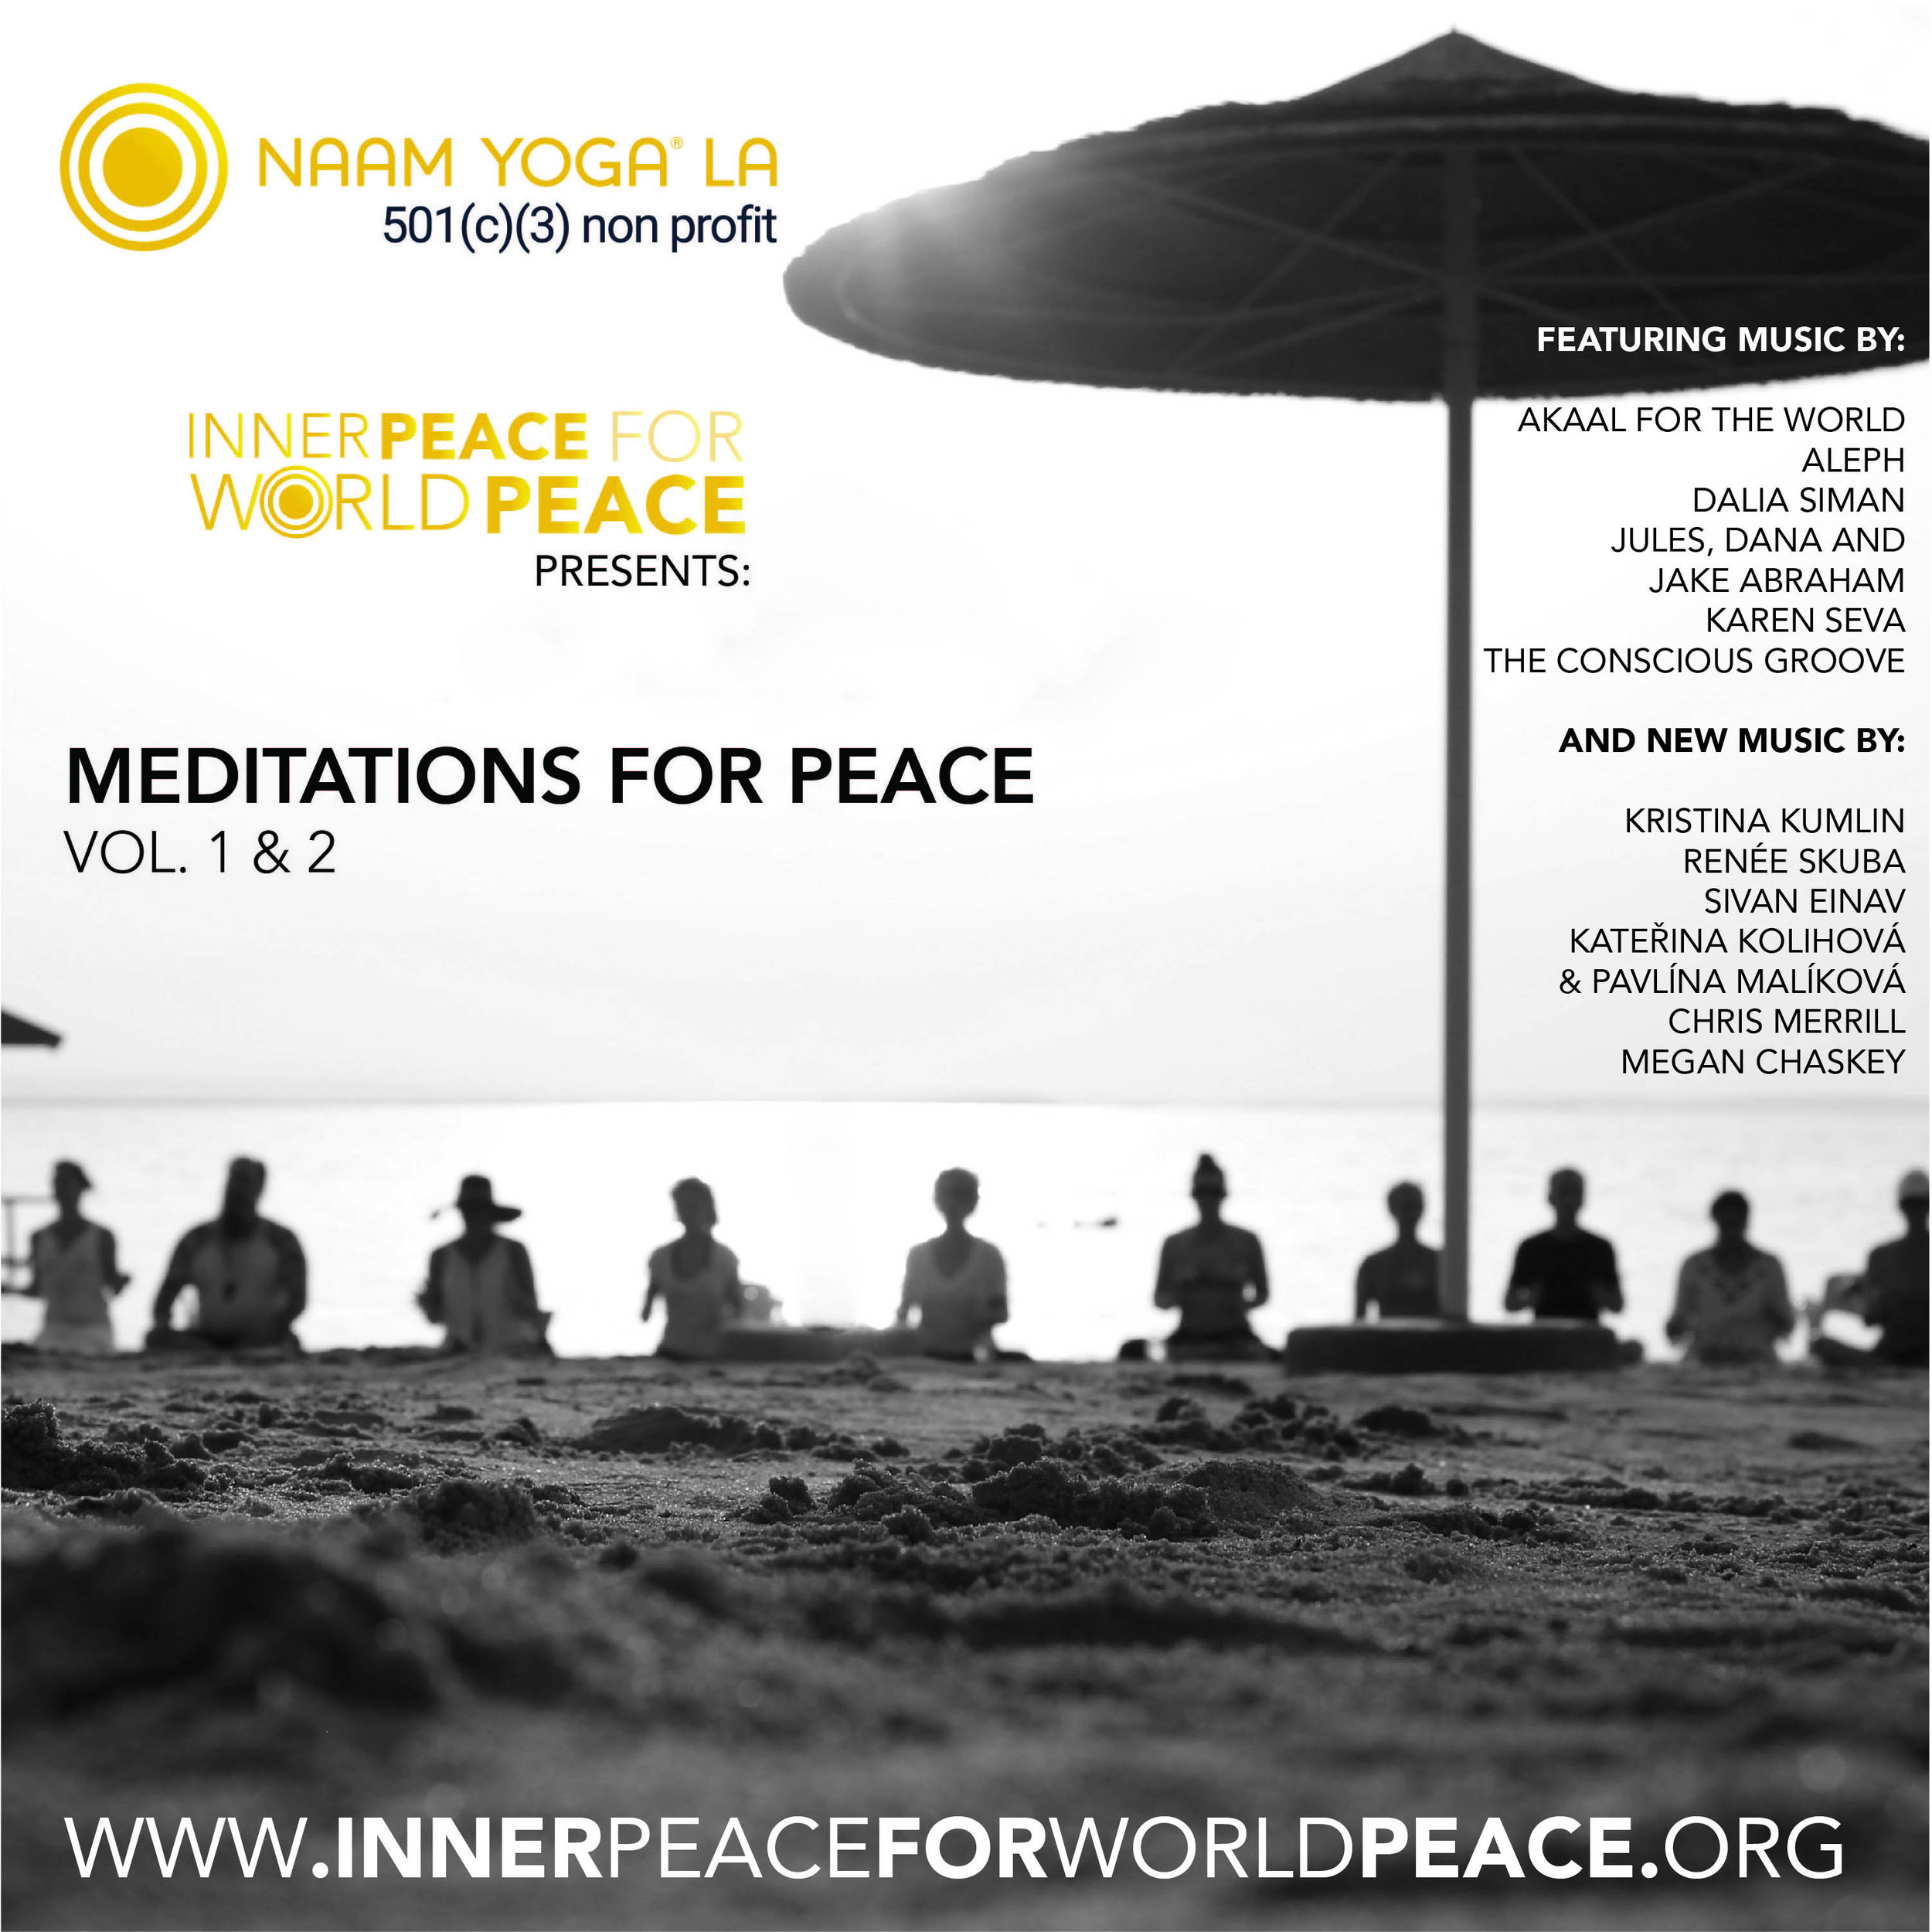 Meditations For Peace is an outstanding compilation of meditations, songs and prayers from a variety of naam recording artists.  Composed of 2 volumes, Meditations for Peace contains almost 3 hours of music and features 7 new works/future releases.  Buying this album supports a great causes: the Inner Peace for World Peace project and the Global Gathering for Peace and Healing, both of which are sponsored by Naam Yoga La Healing and Research Center (501c3).  Approximately 80% of each album purchased goes to support these projects directly. Please visit www.meditateforpeace.org to purchase the CD. -  Please visit www.meditateforpeace.org to purchase the CD.